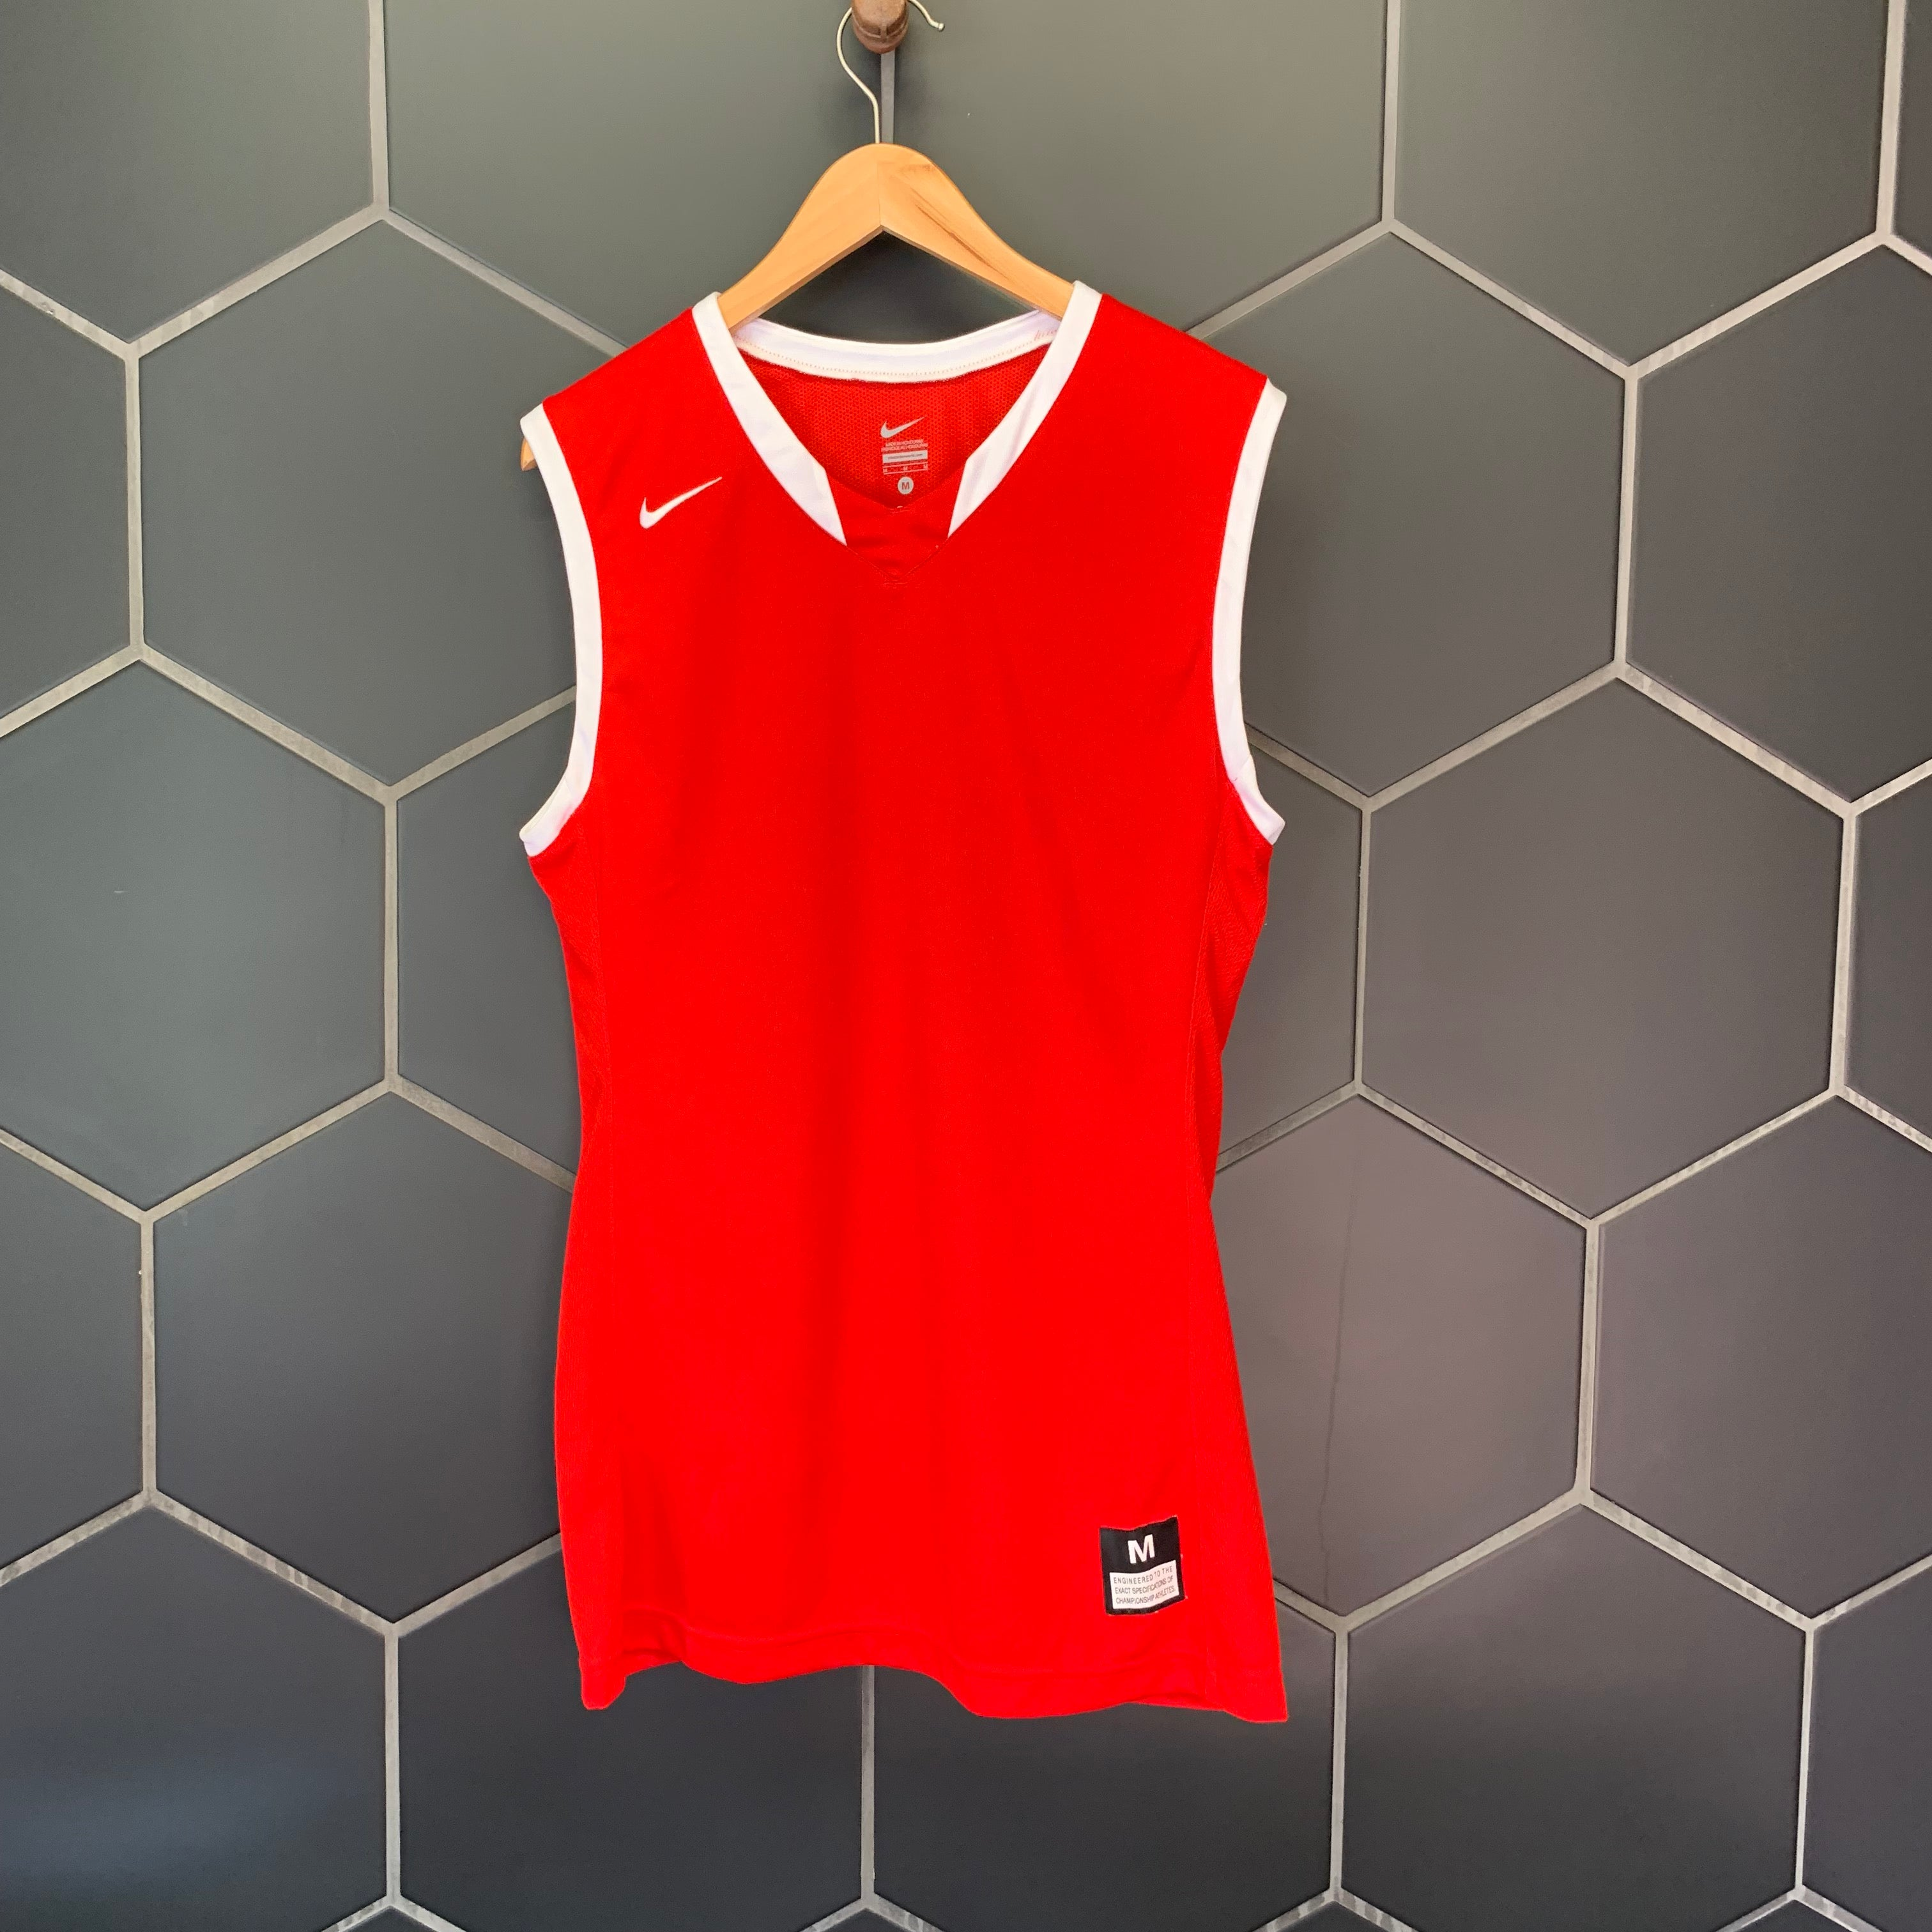 New! Mens Nike Basketball Mesh Team Jersey Tank Top Red White (Multiple Sizes)